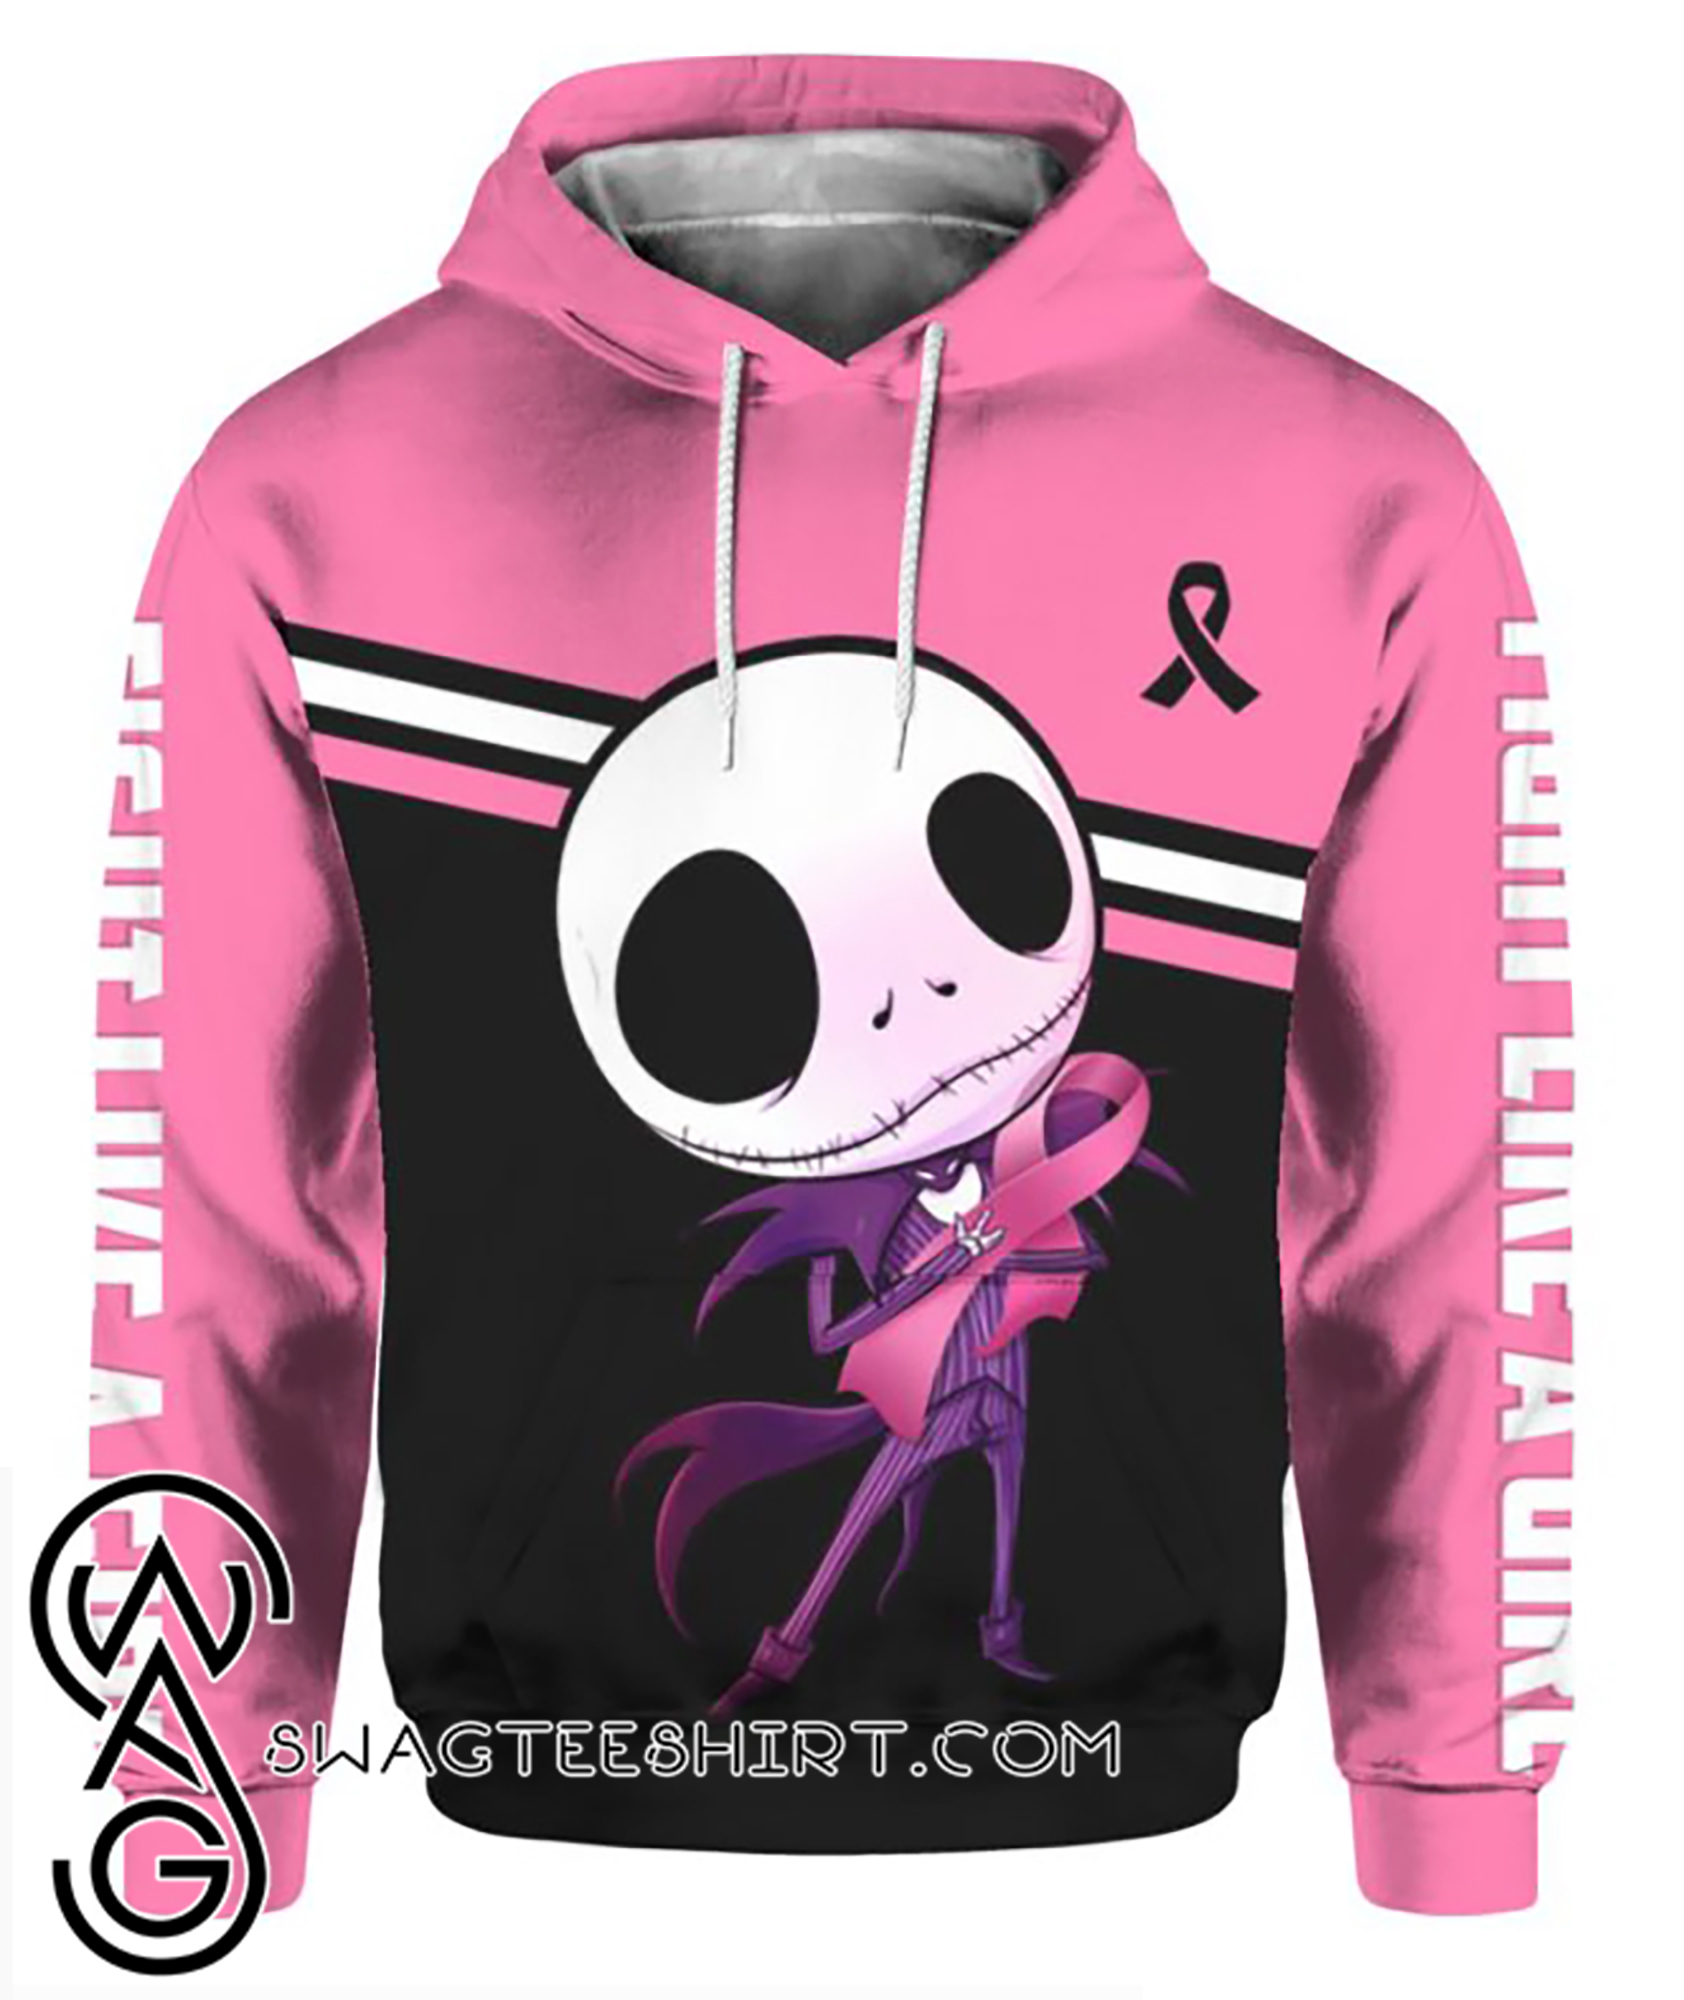 Baby jack skellington hugs ribbon breast cancer awareness all over printed hoodie